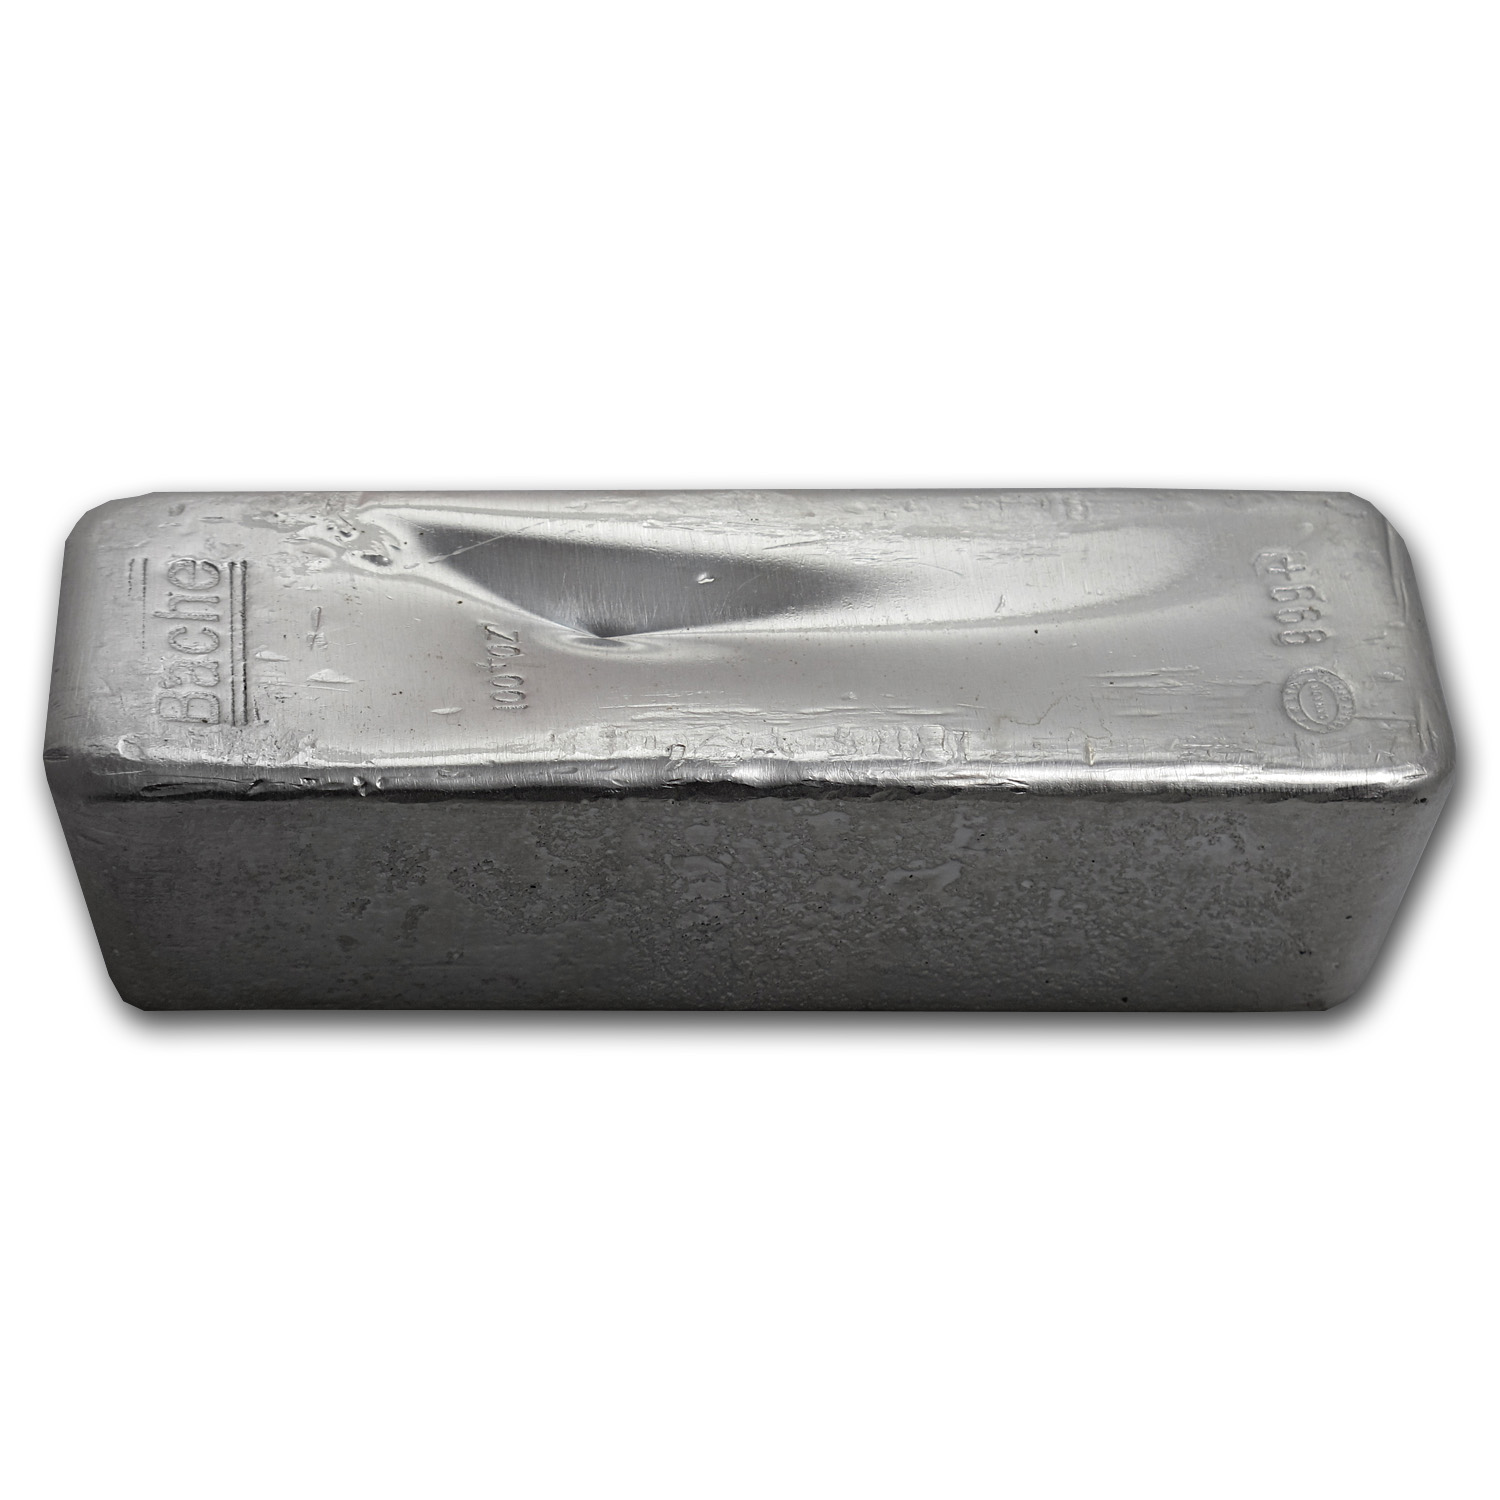 100 oz Silver Bar - Johnson Matthey (Bache)